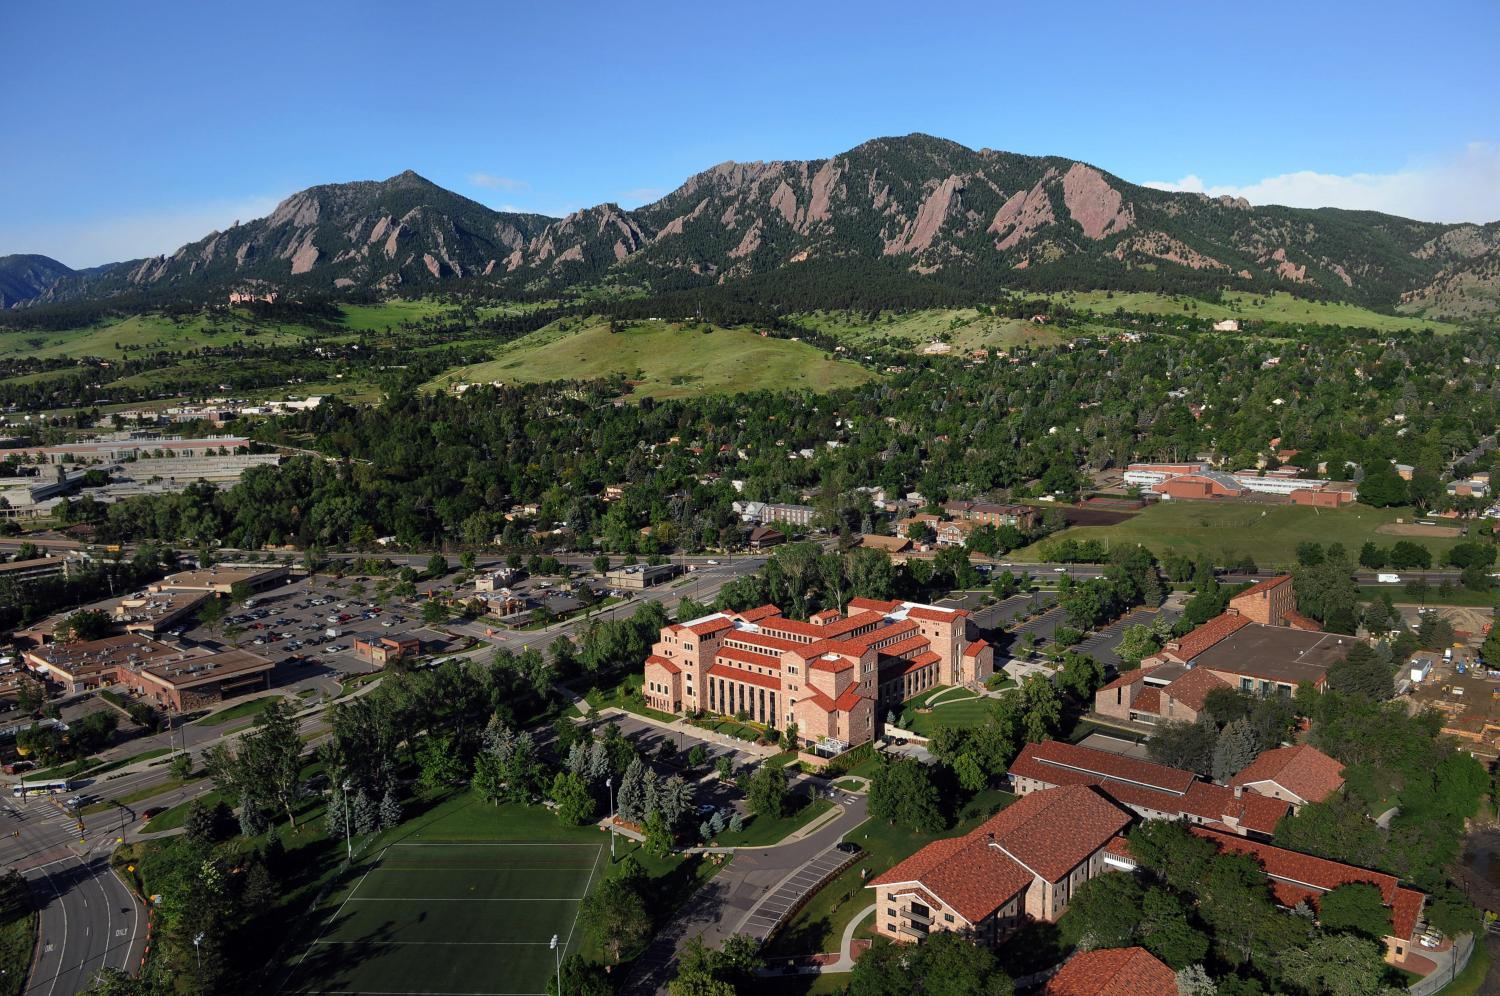 Aerial shot of the law school building with the Flatirons in the background